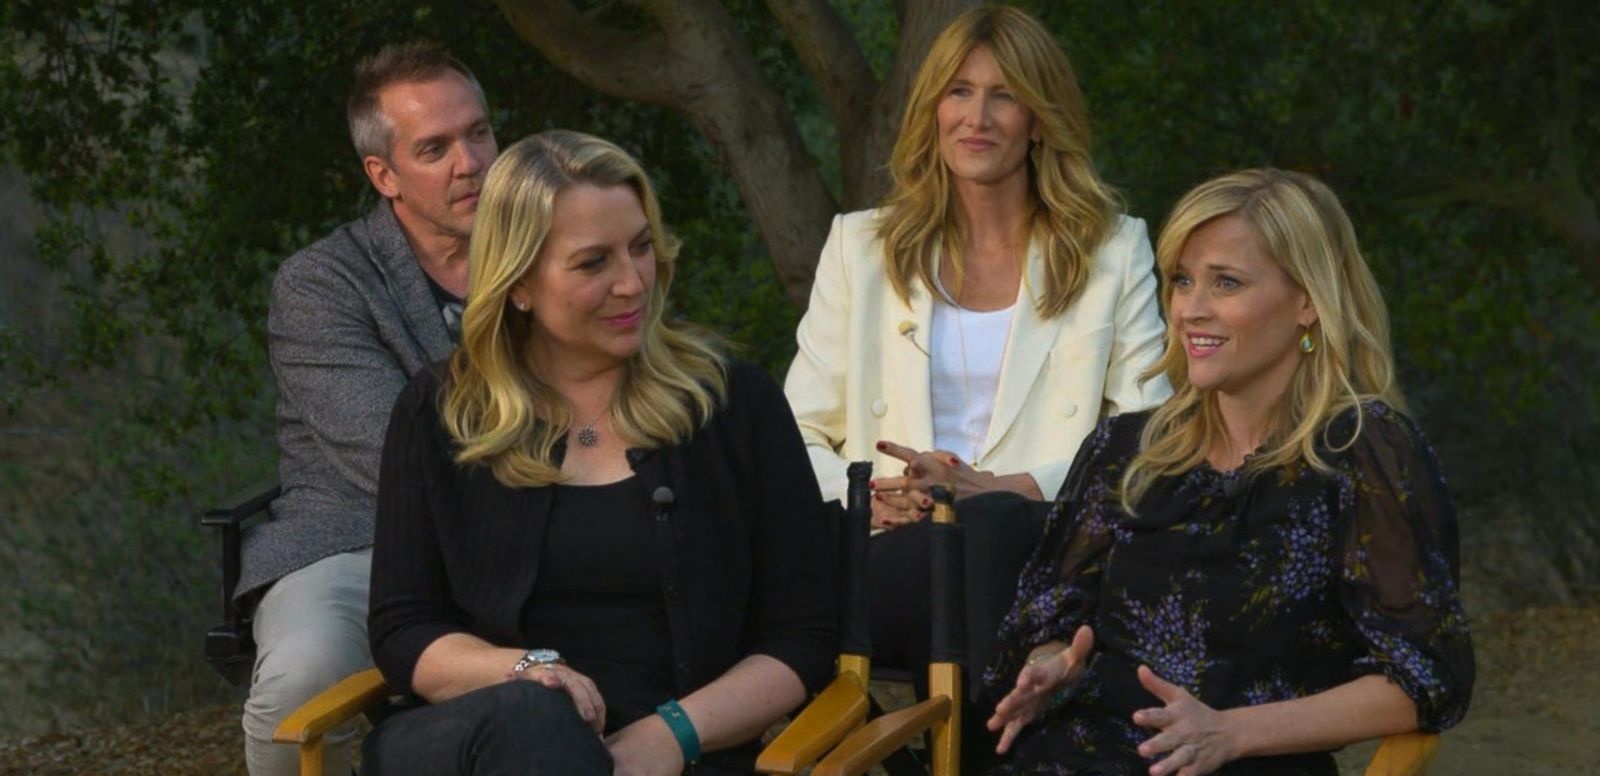 VIDEO: Star-Studded Cast Takes on the New Movie 'Wild'